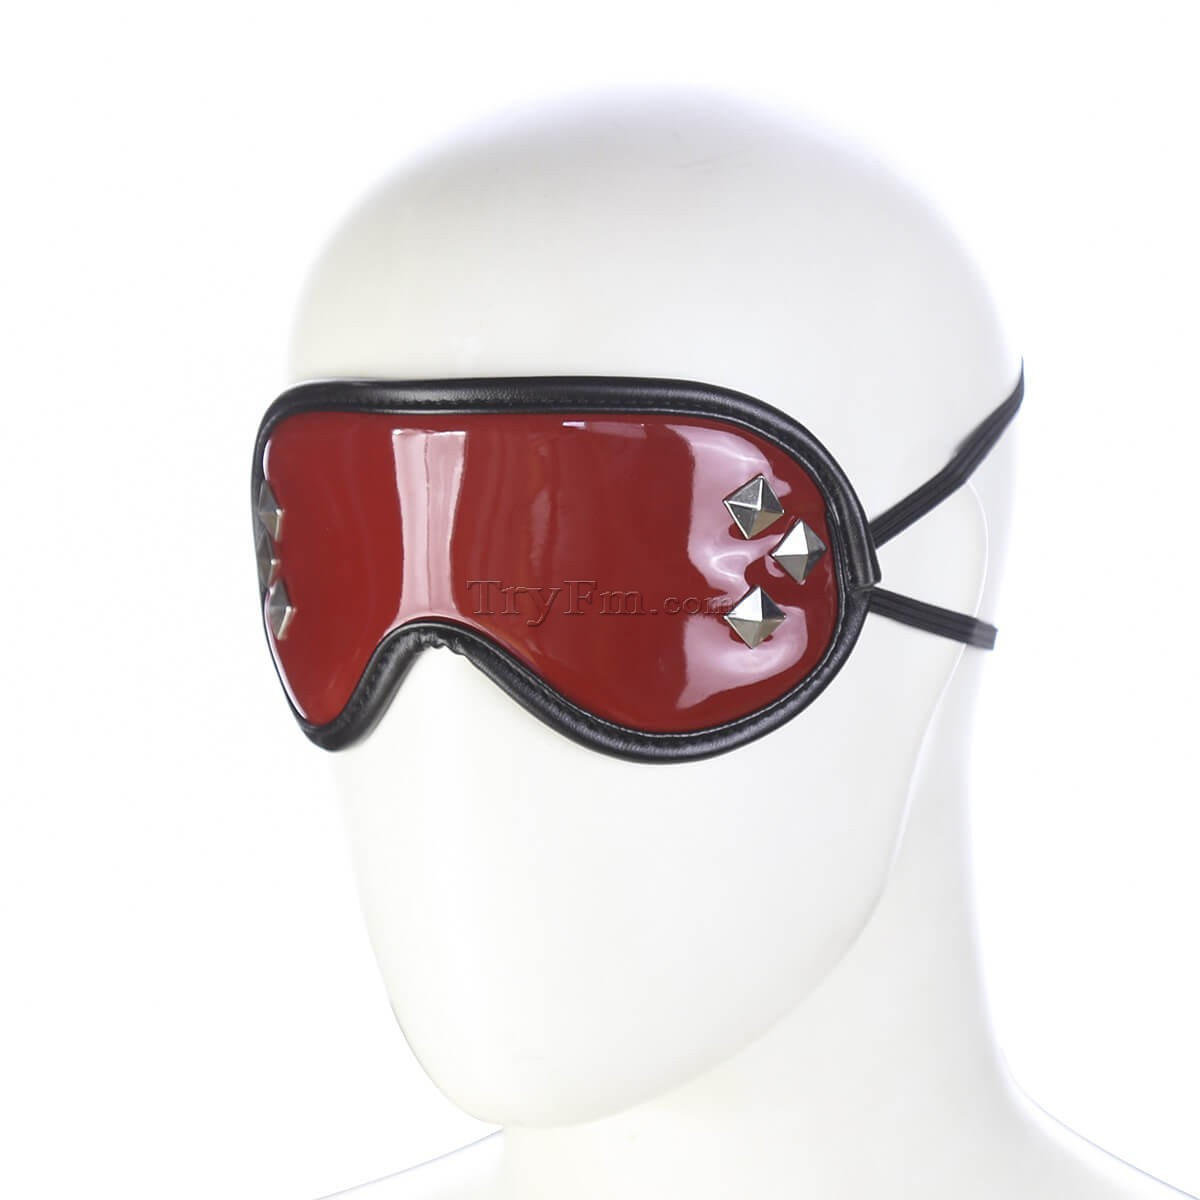 13-dark-red-rivet-blindfold3.jpg